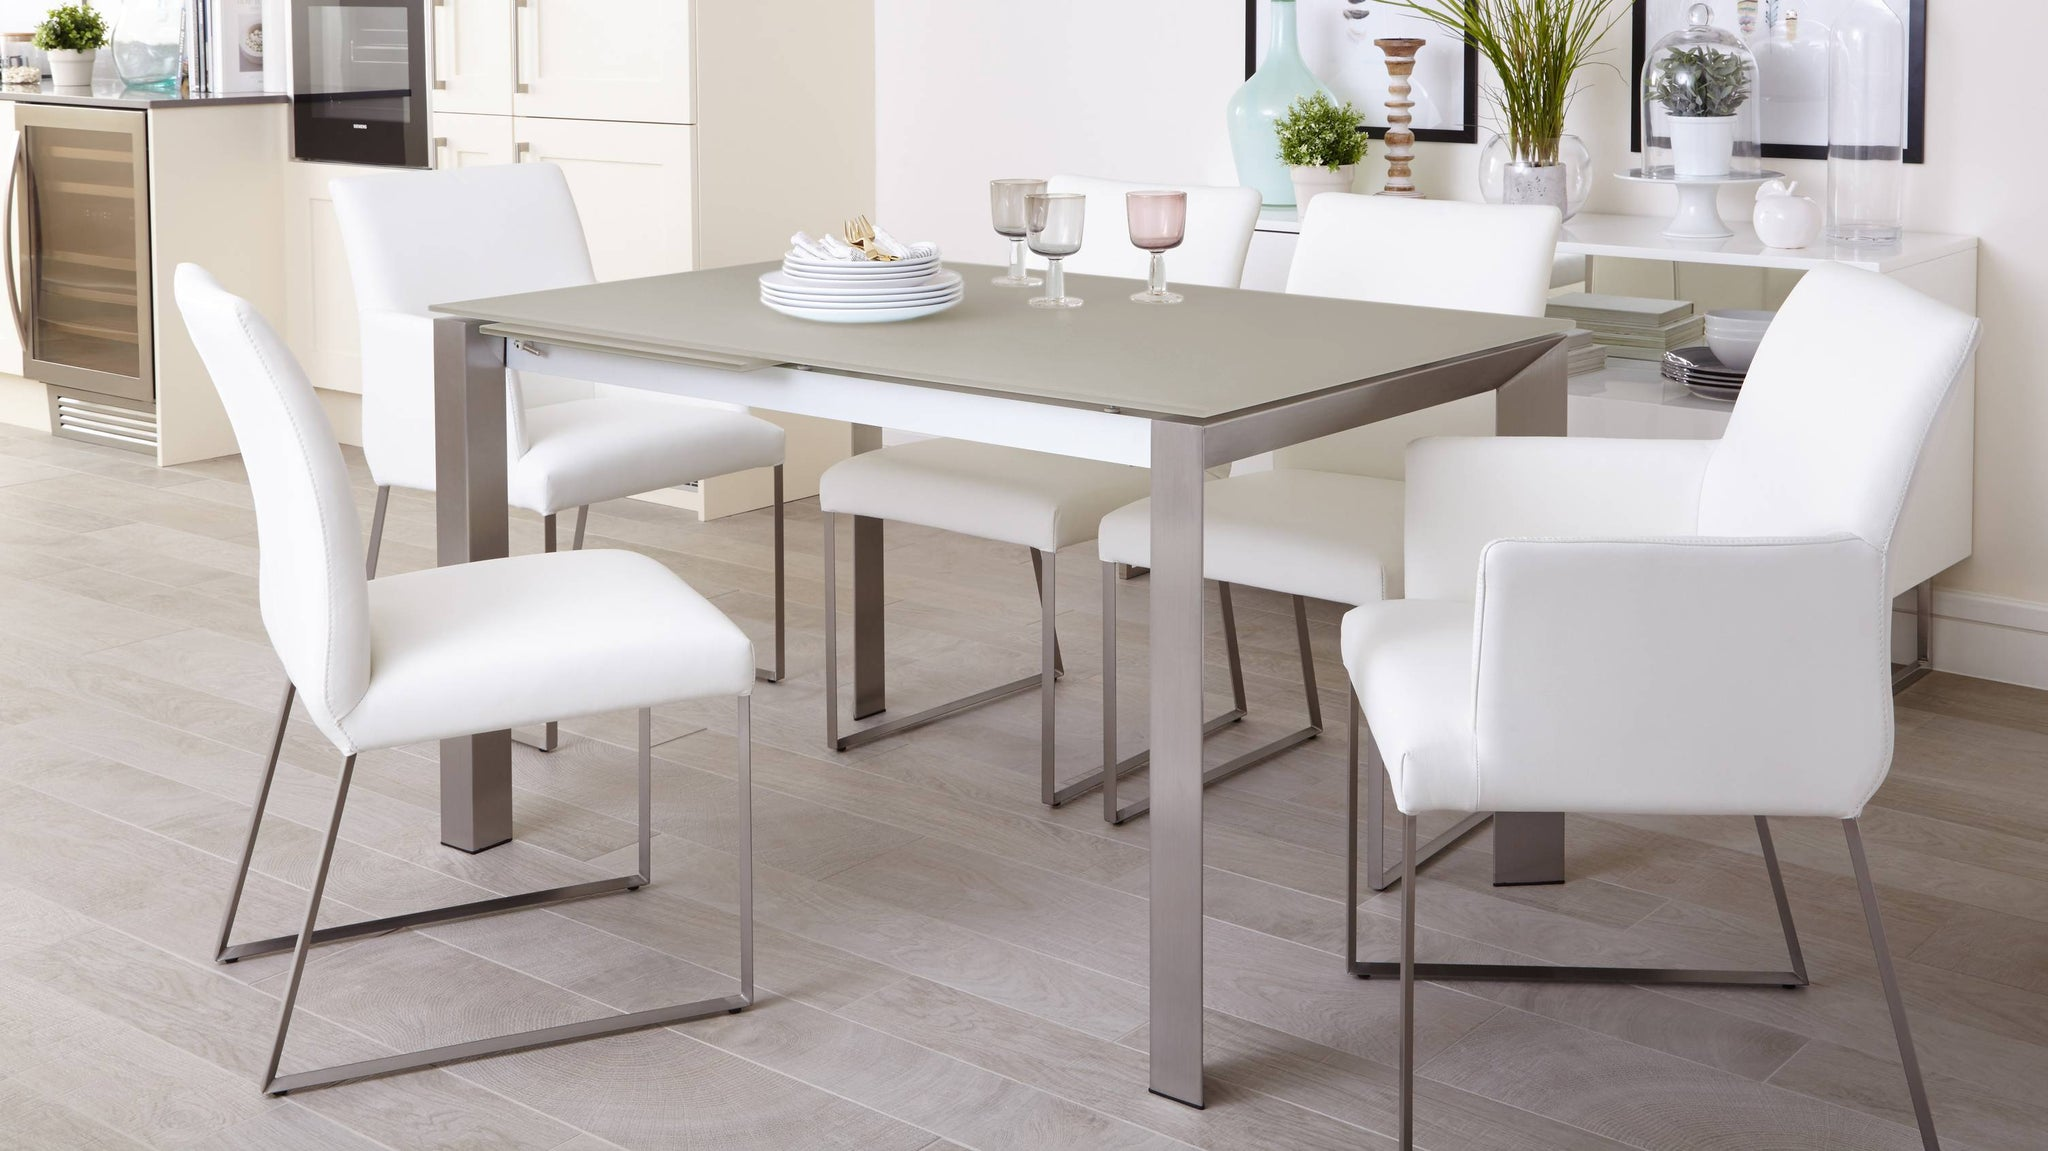 Grey Gloss Extending Dining Table and Real Leather Dining Chairs